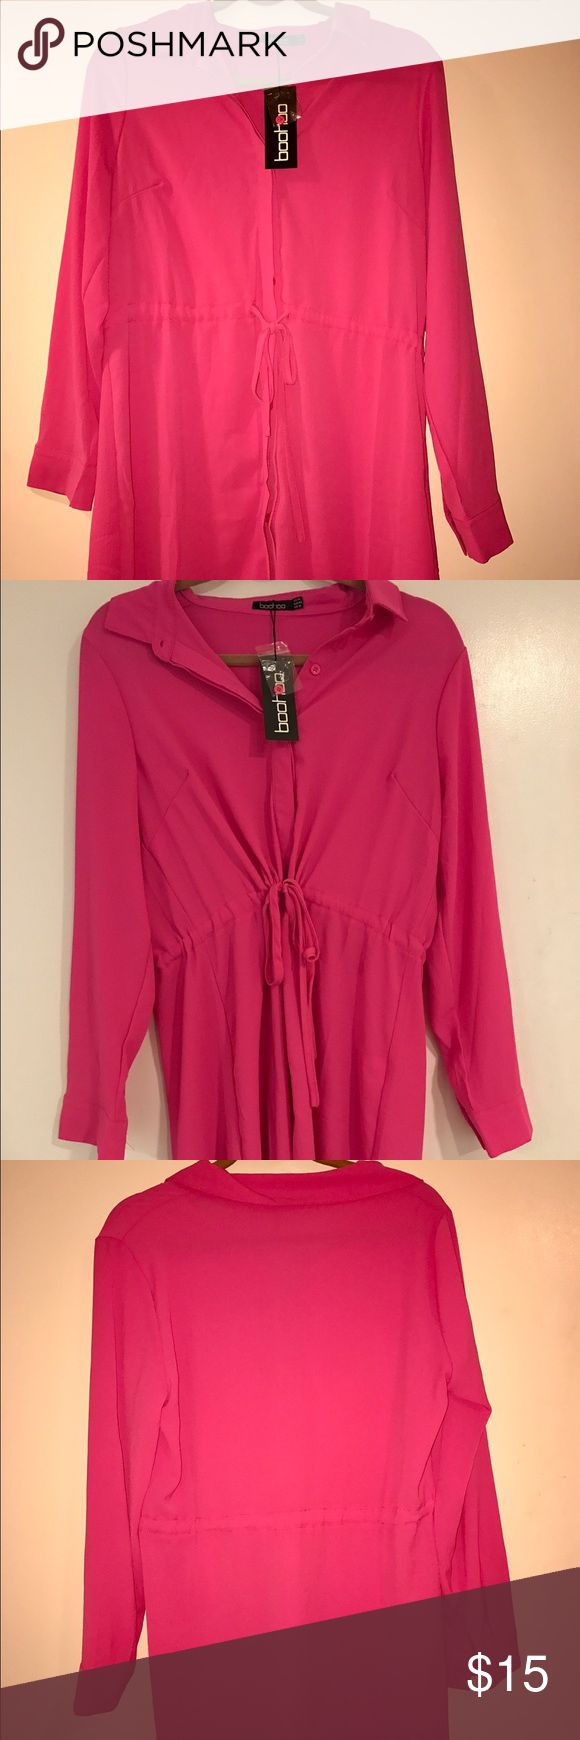 Boohoo Tie Front Hot Pink Shirt Dress Hot pink. Adjustable tie to cinch waist. Long sleeves. Perfect for work, class, or running errands! Definitely can be dressed up or down! Boohoo Dresses